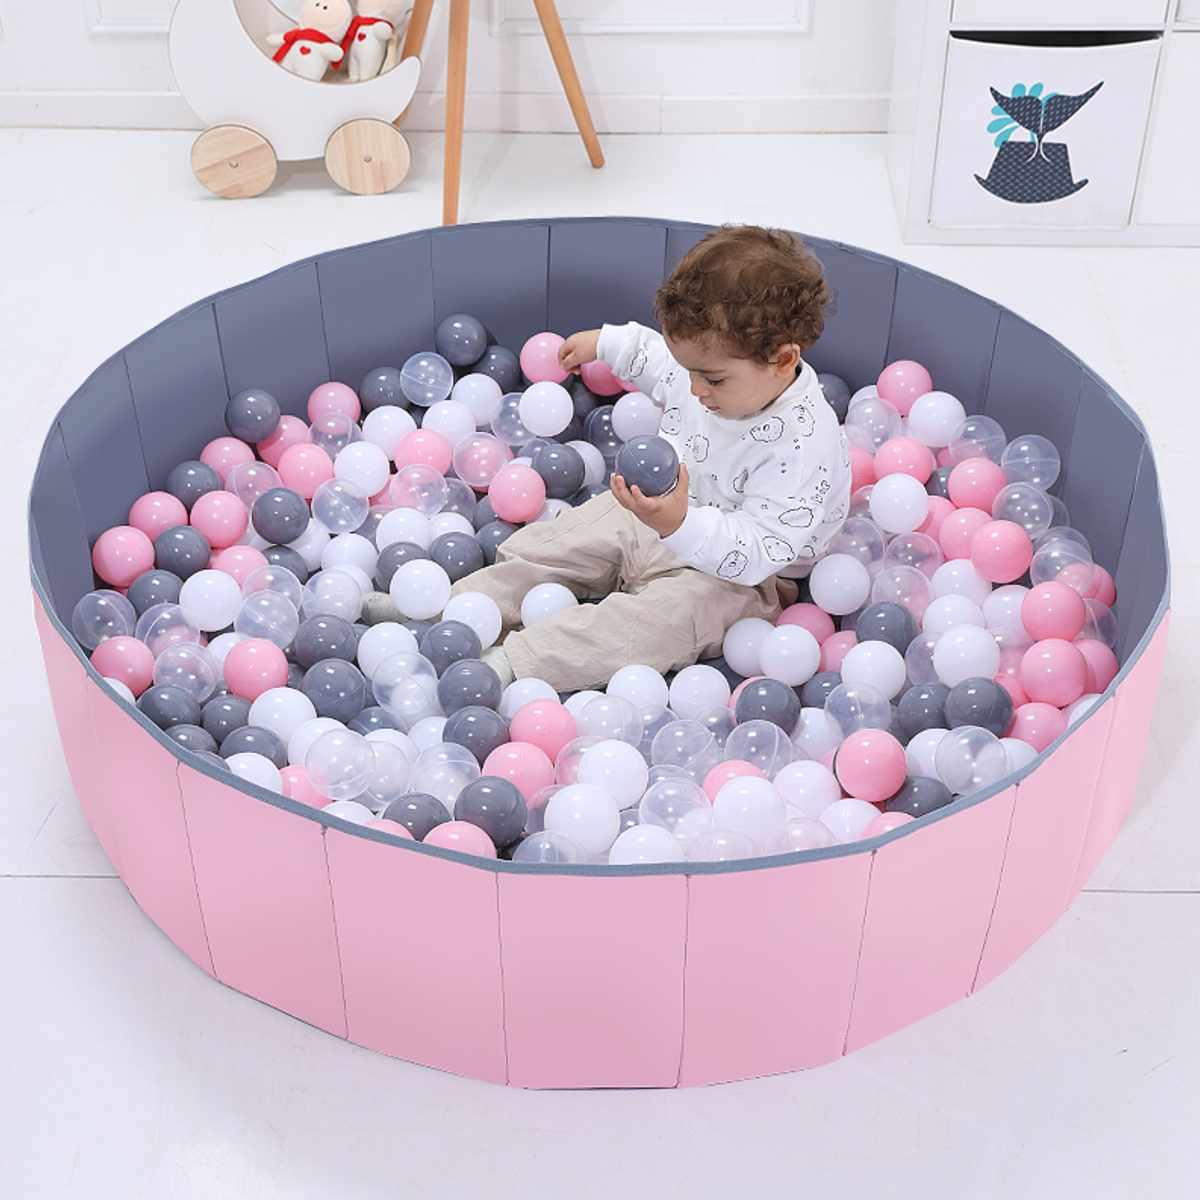 Foldable Baby Playpen  80x26cm Folding Children Kids Outdoor & Indoor Playing Ocean Ball Pool Child Baby Fence 100pcs Ball